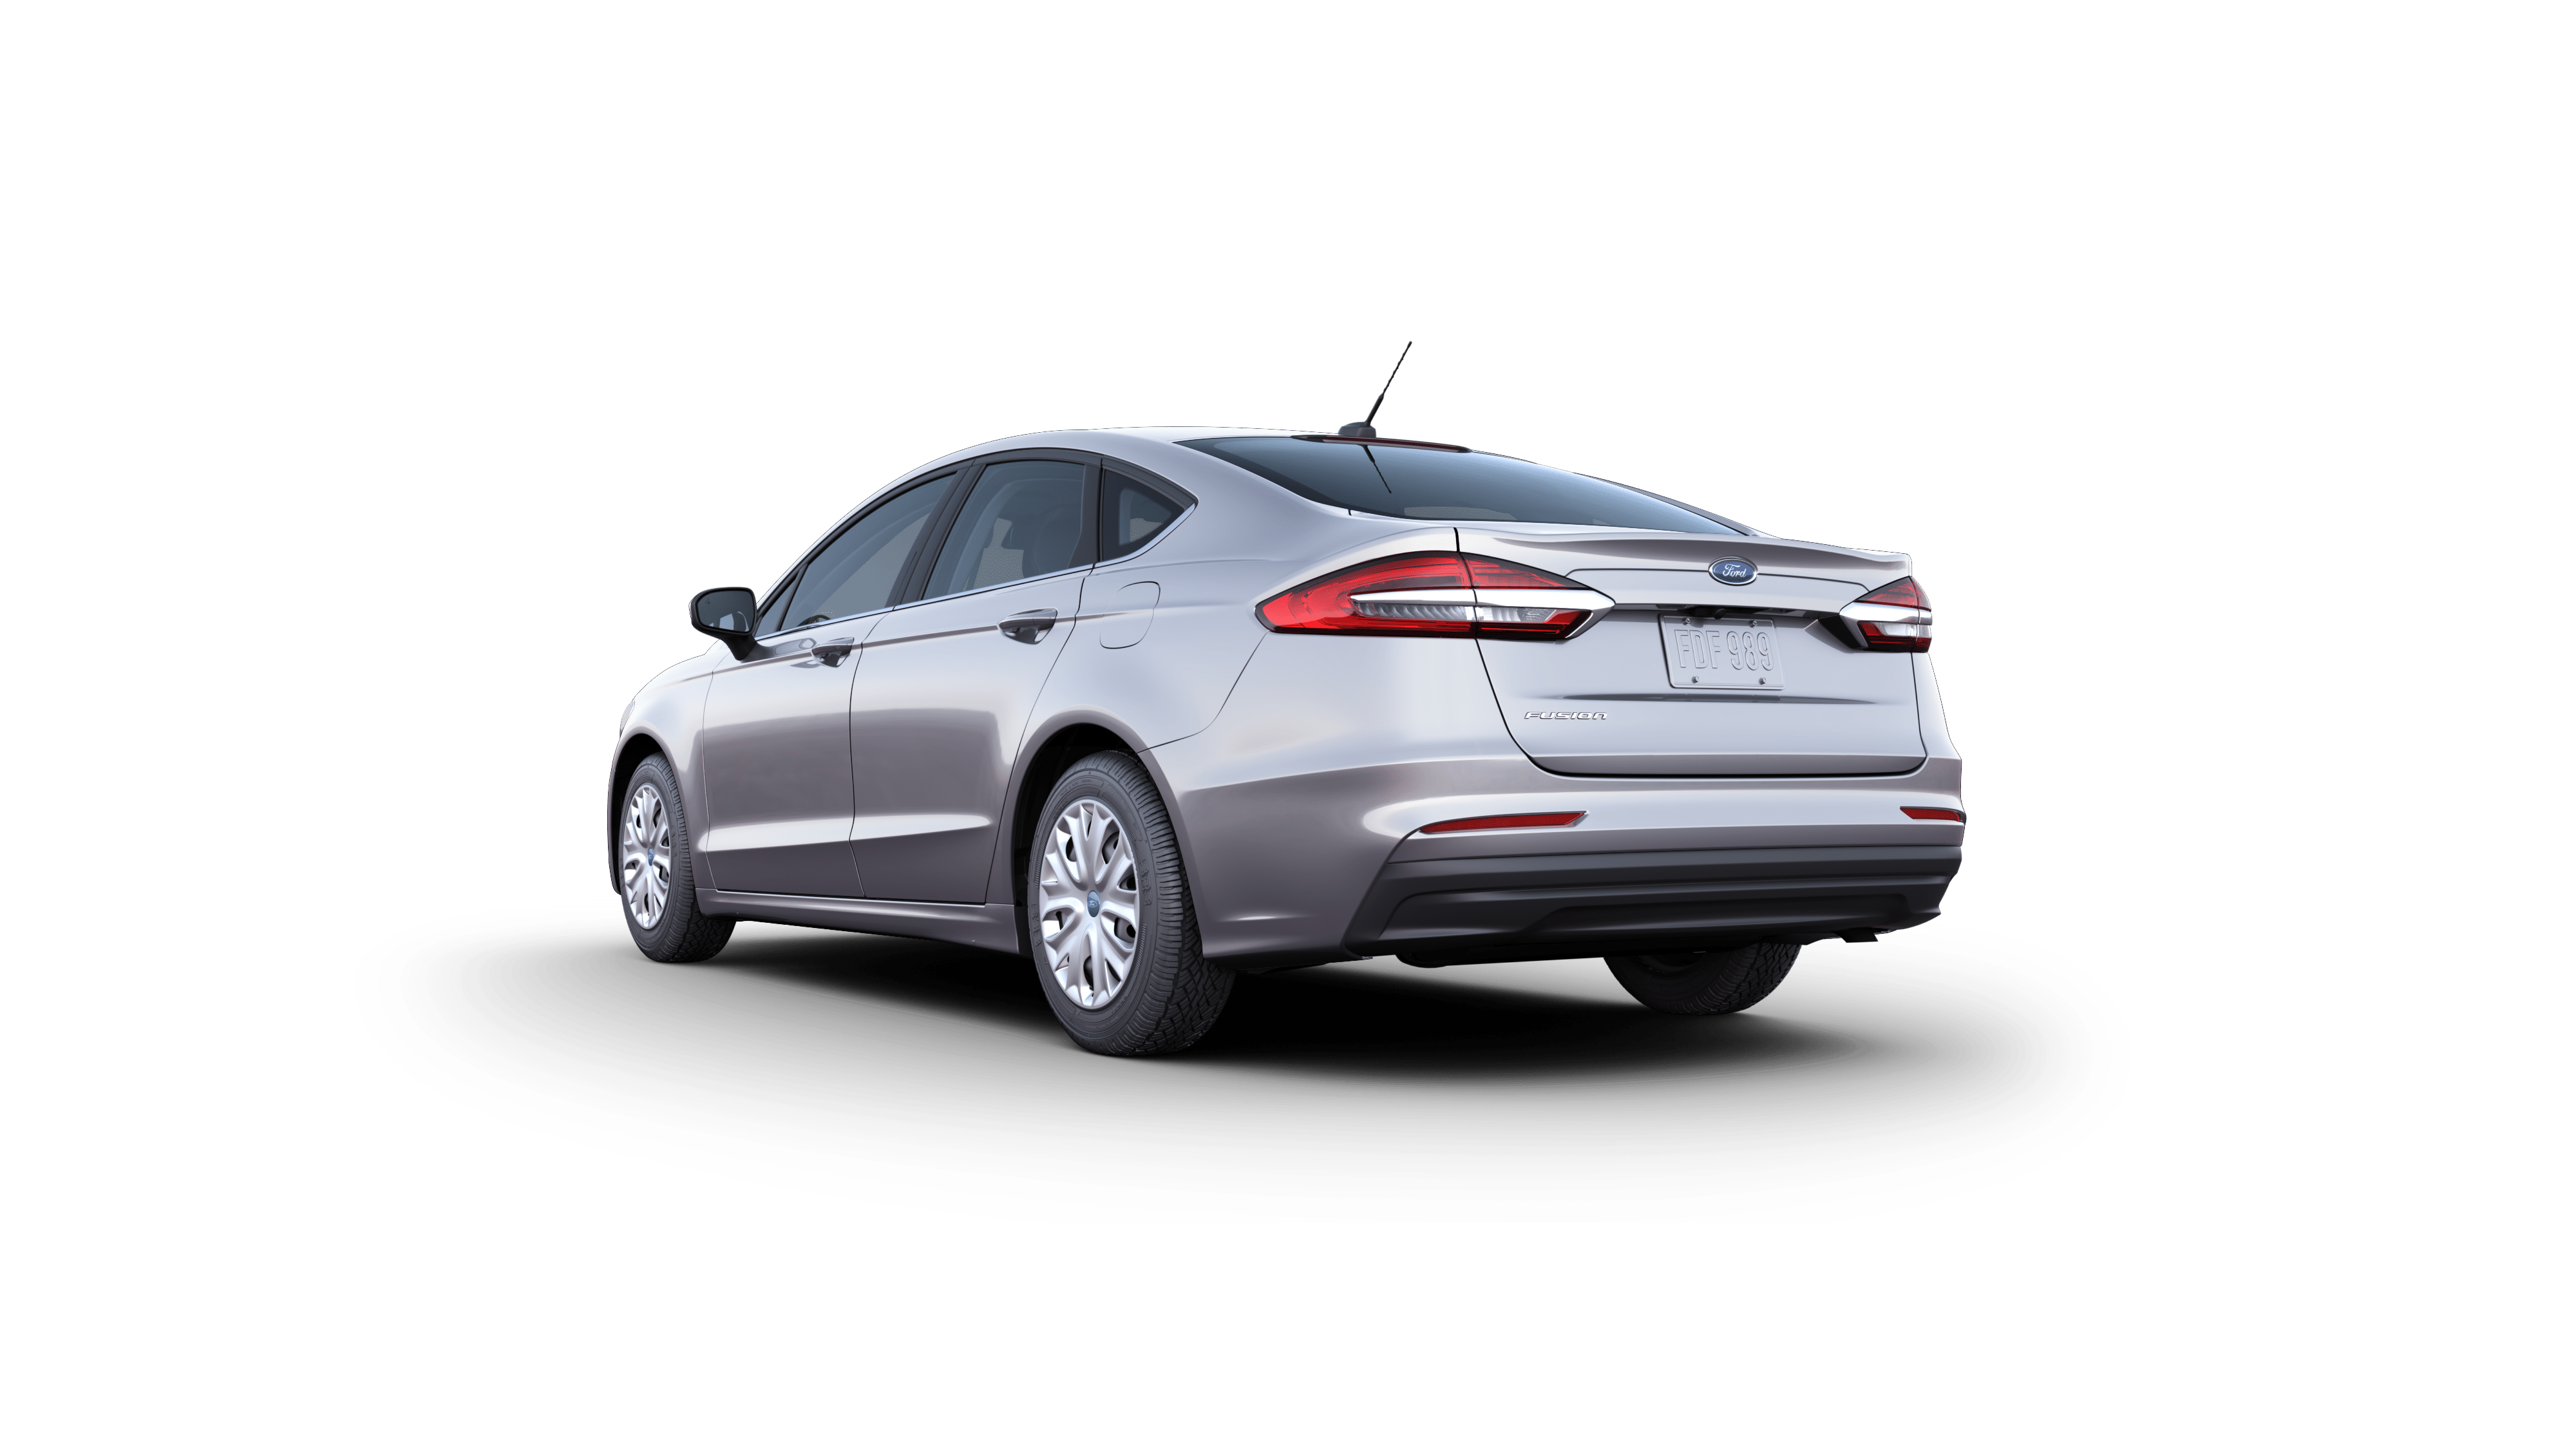 2019 Ford Fusion for sale in Martin - 3FA6P0G79KR146804